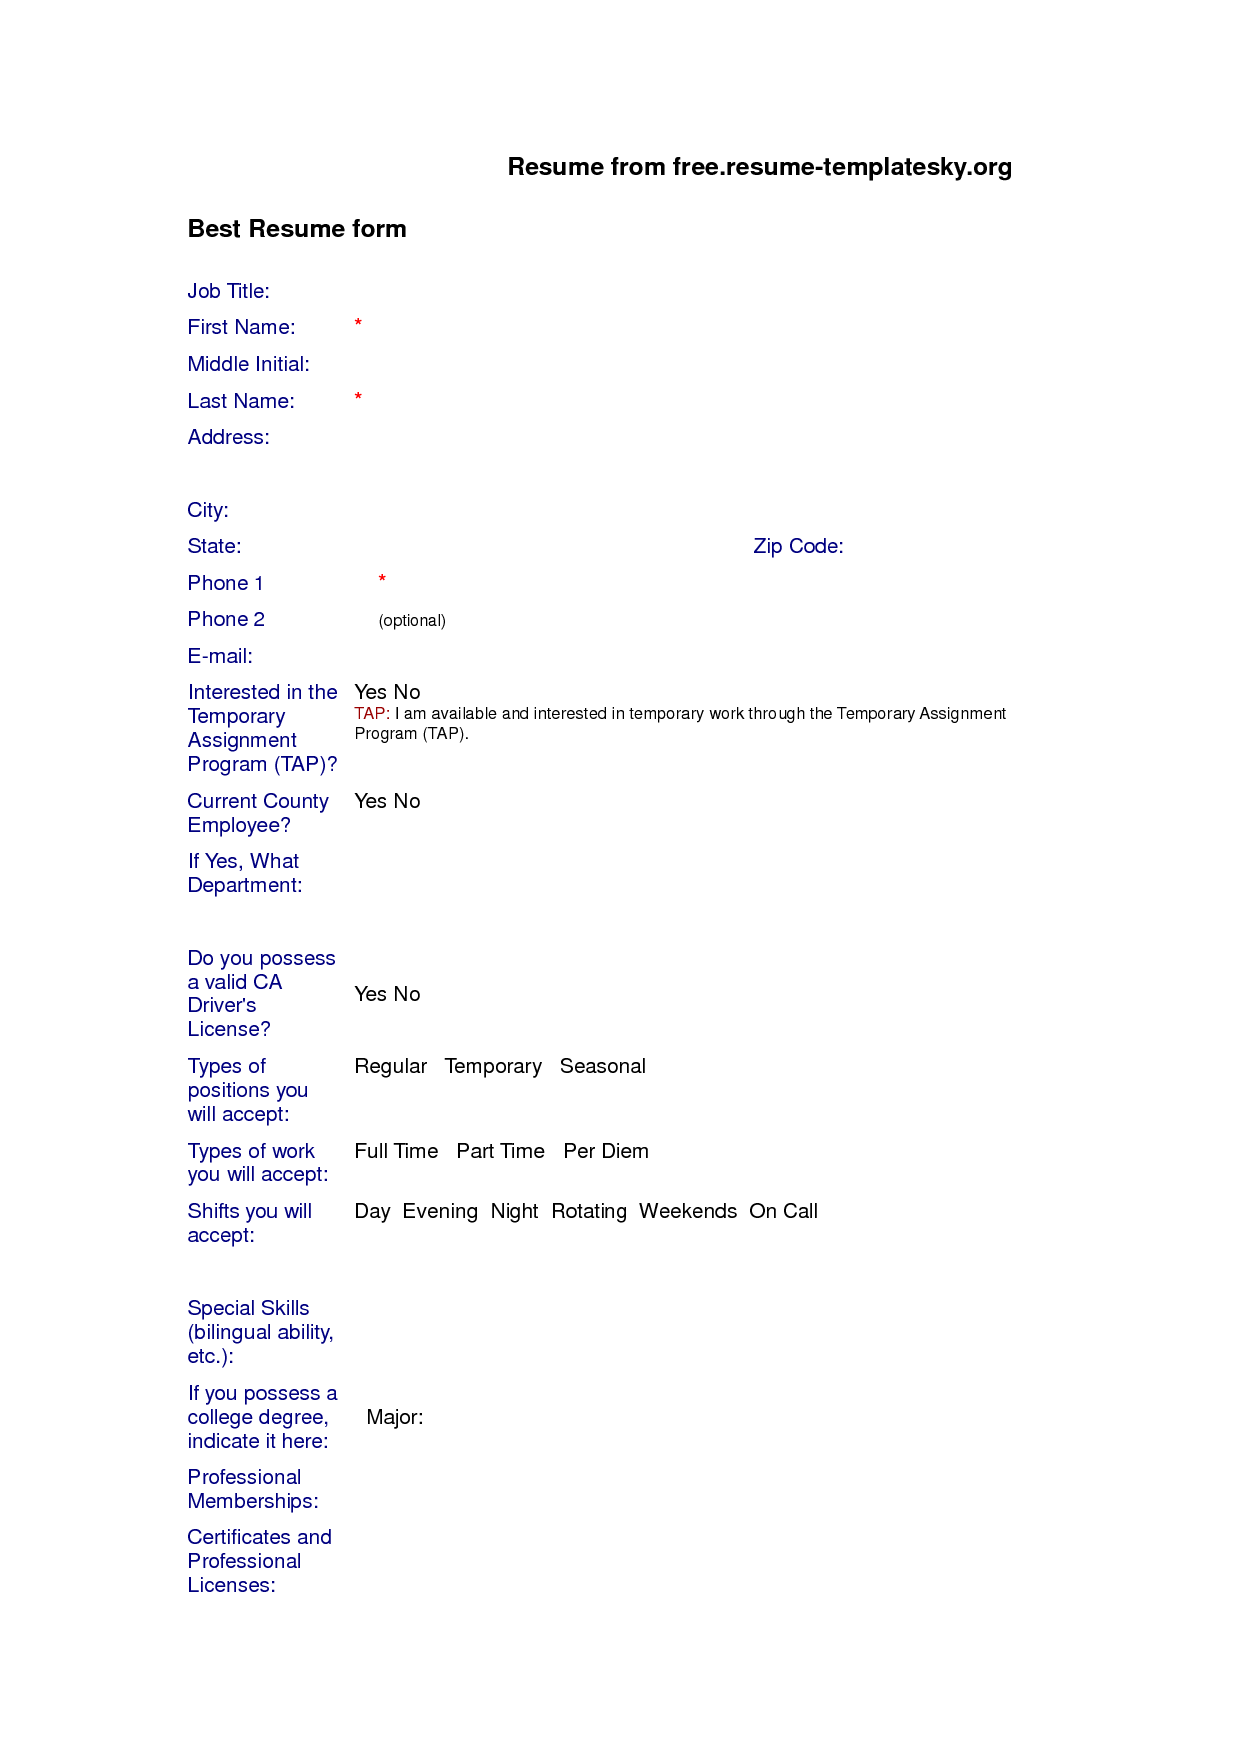 blank resume format free download     resumecareer info  blank